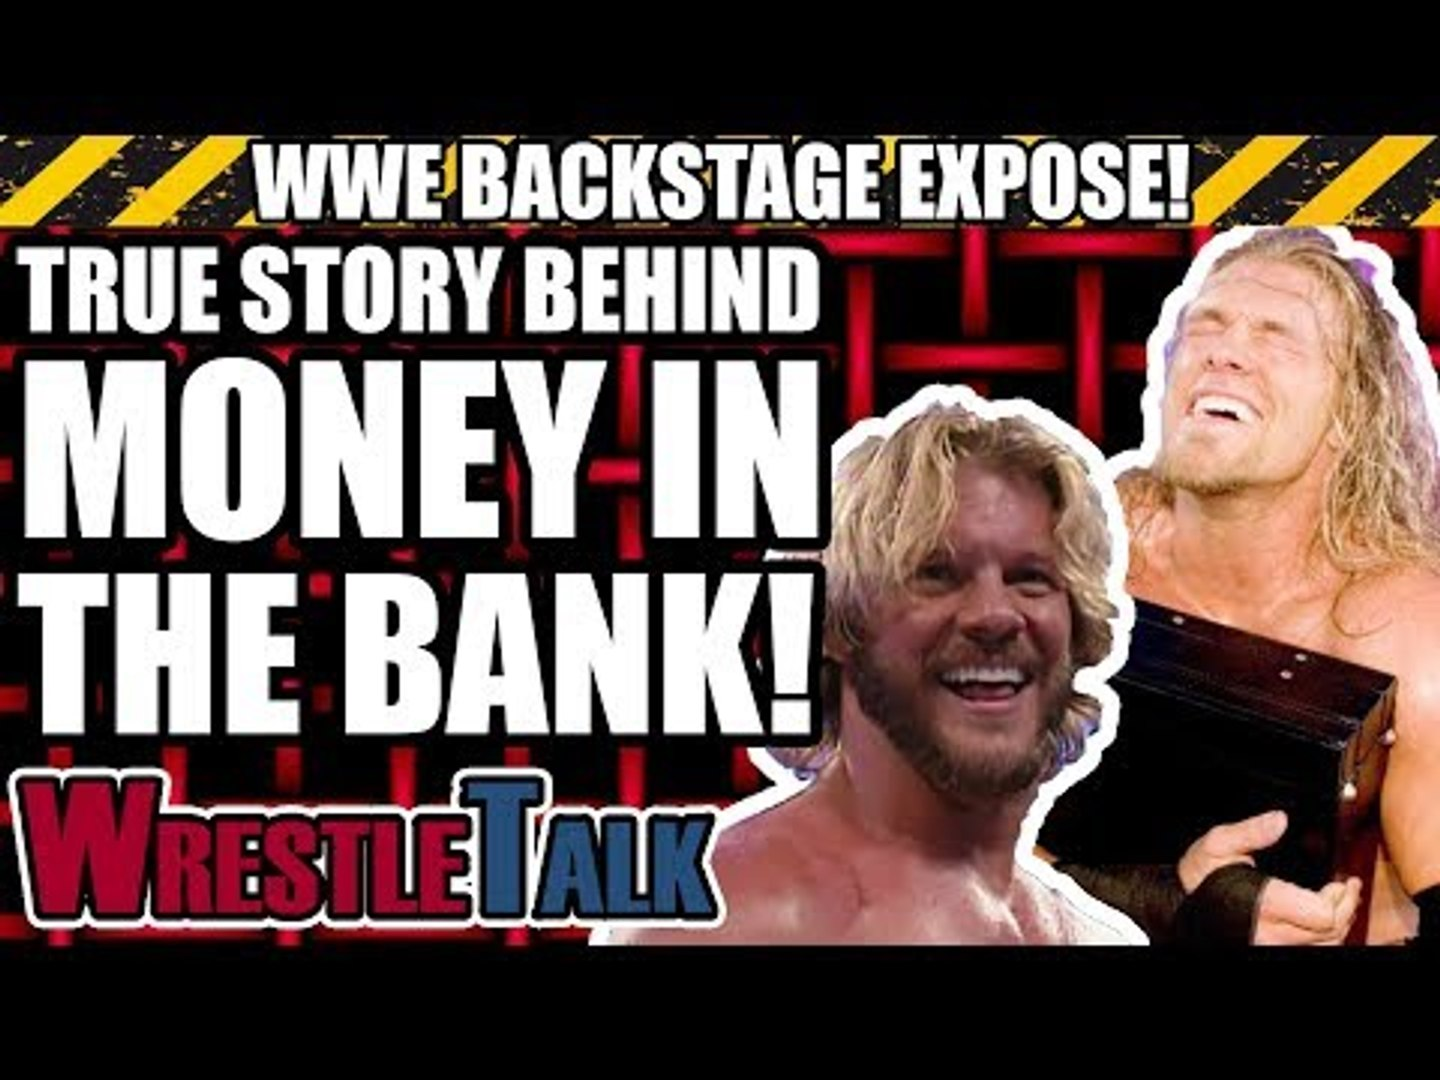 The True Story Behind Money in the Bank! | WWE Backstage Expose